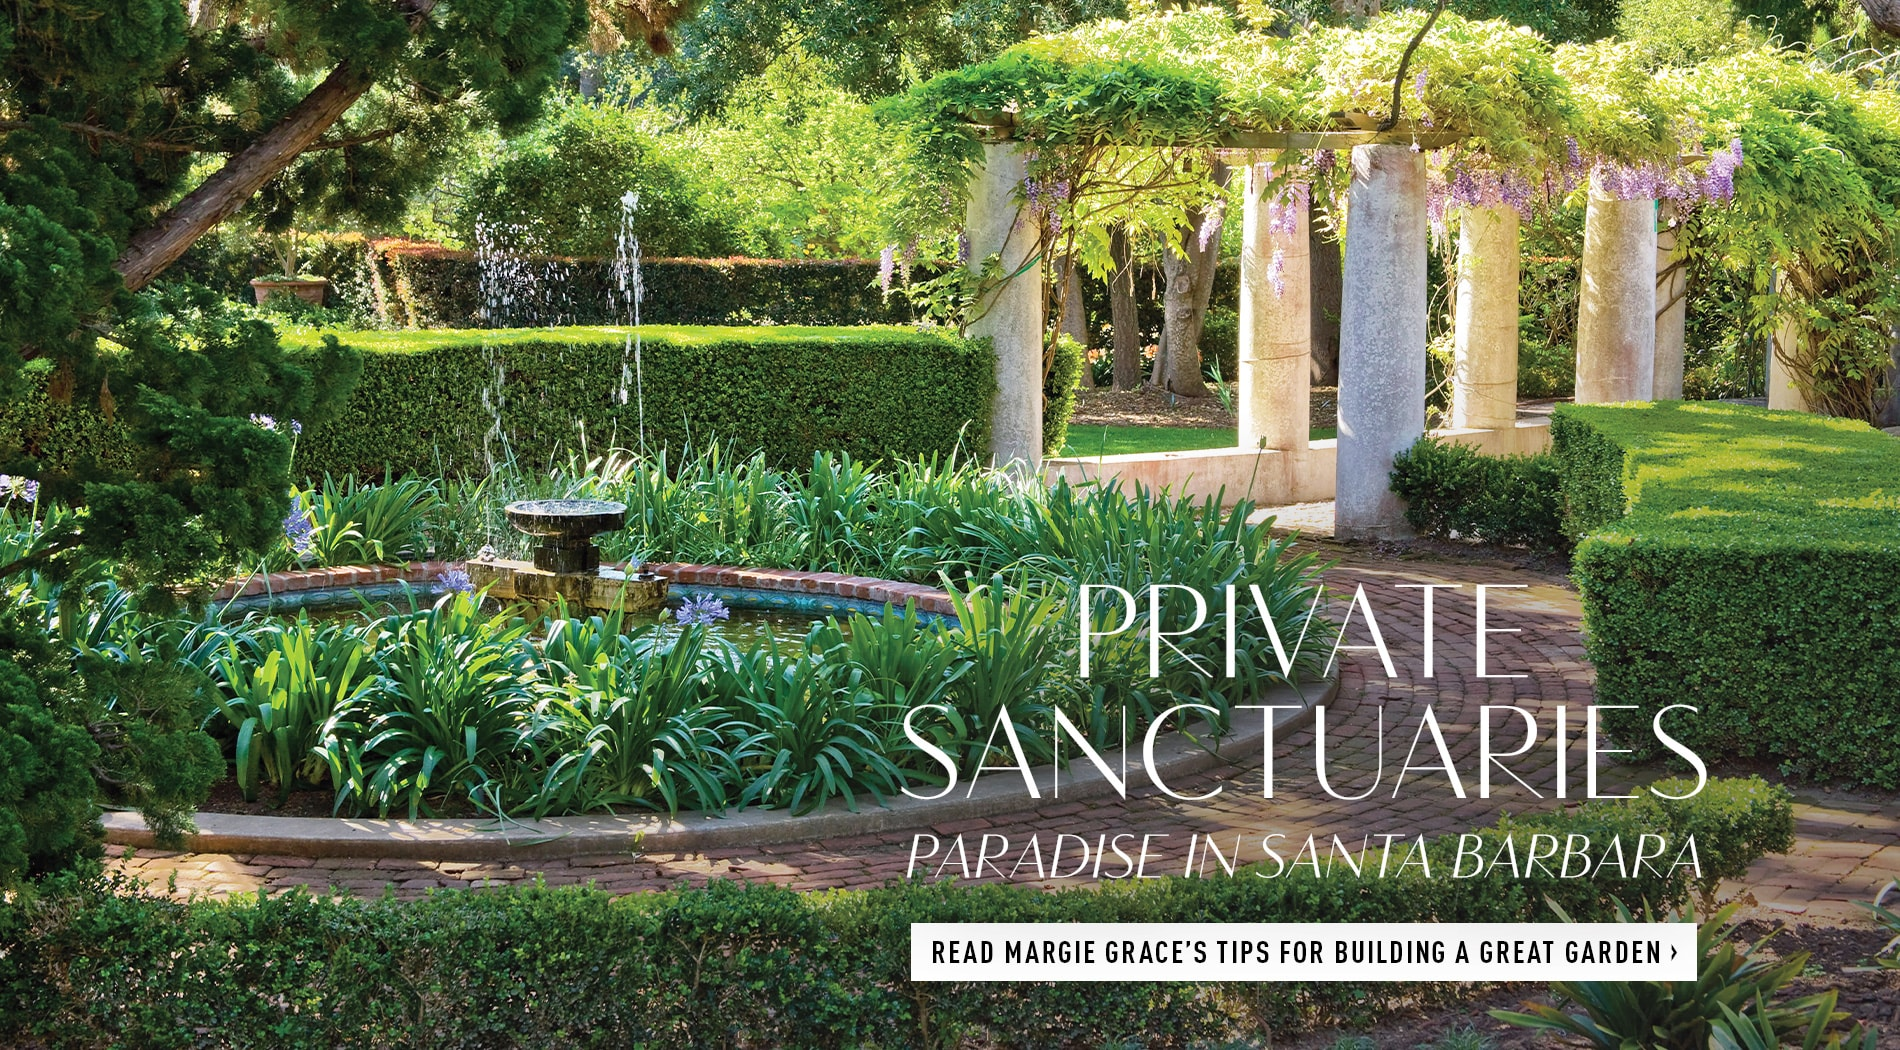 VIE Magazine - Decor and Home Issue - June 2020 - Tips for Building a Great Garden